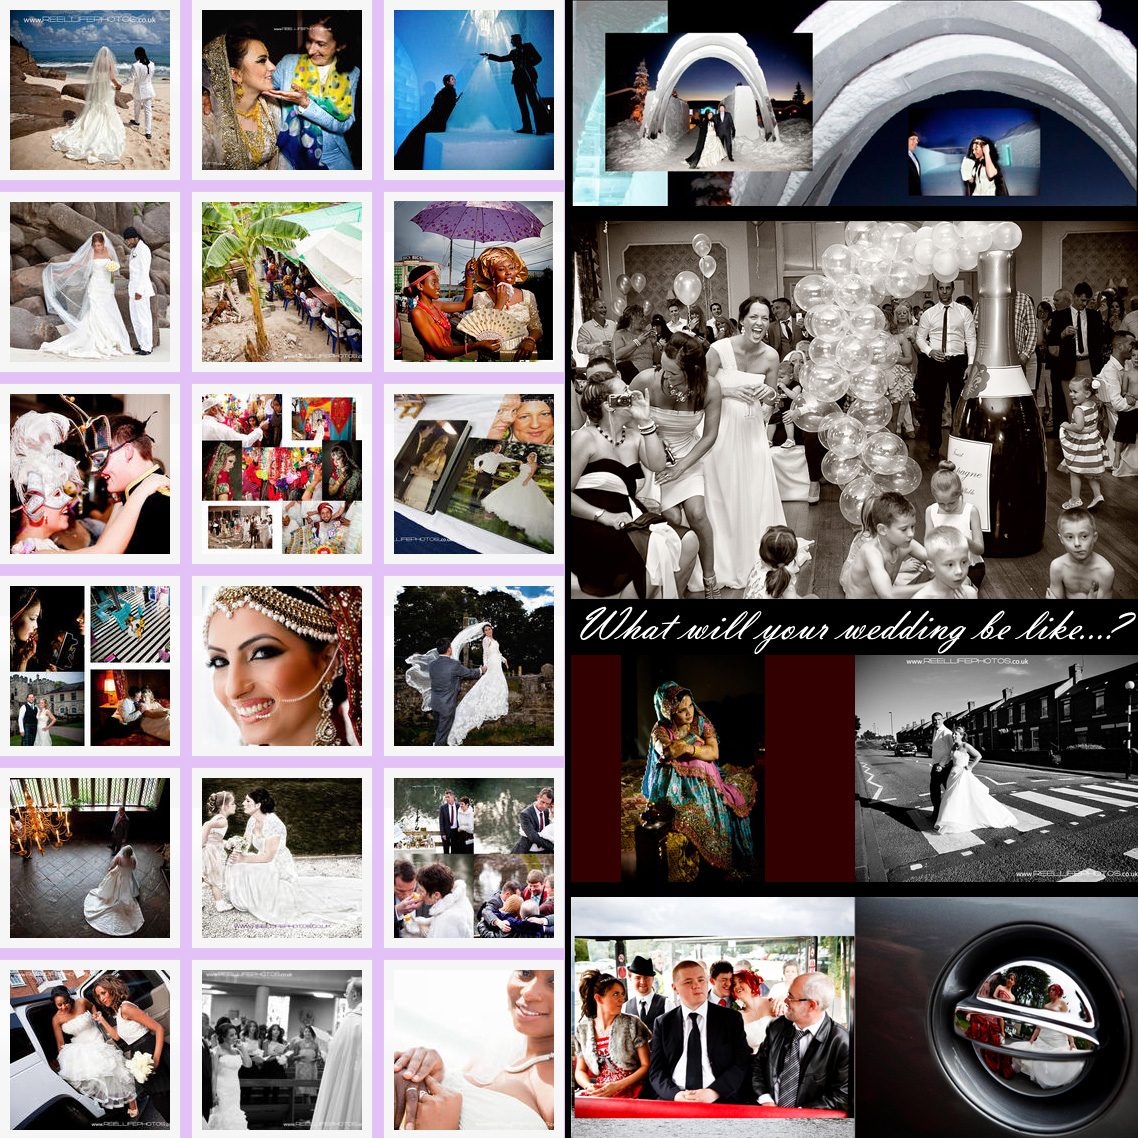 wedding pictures in a photo collage